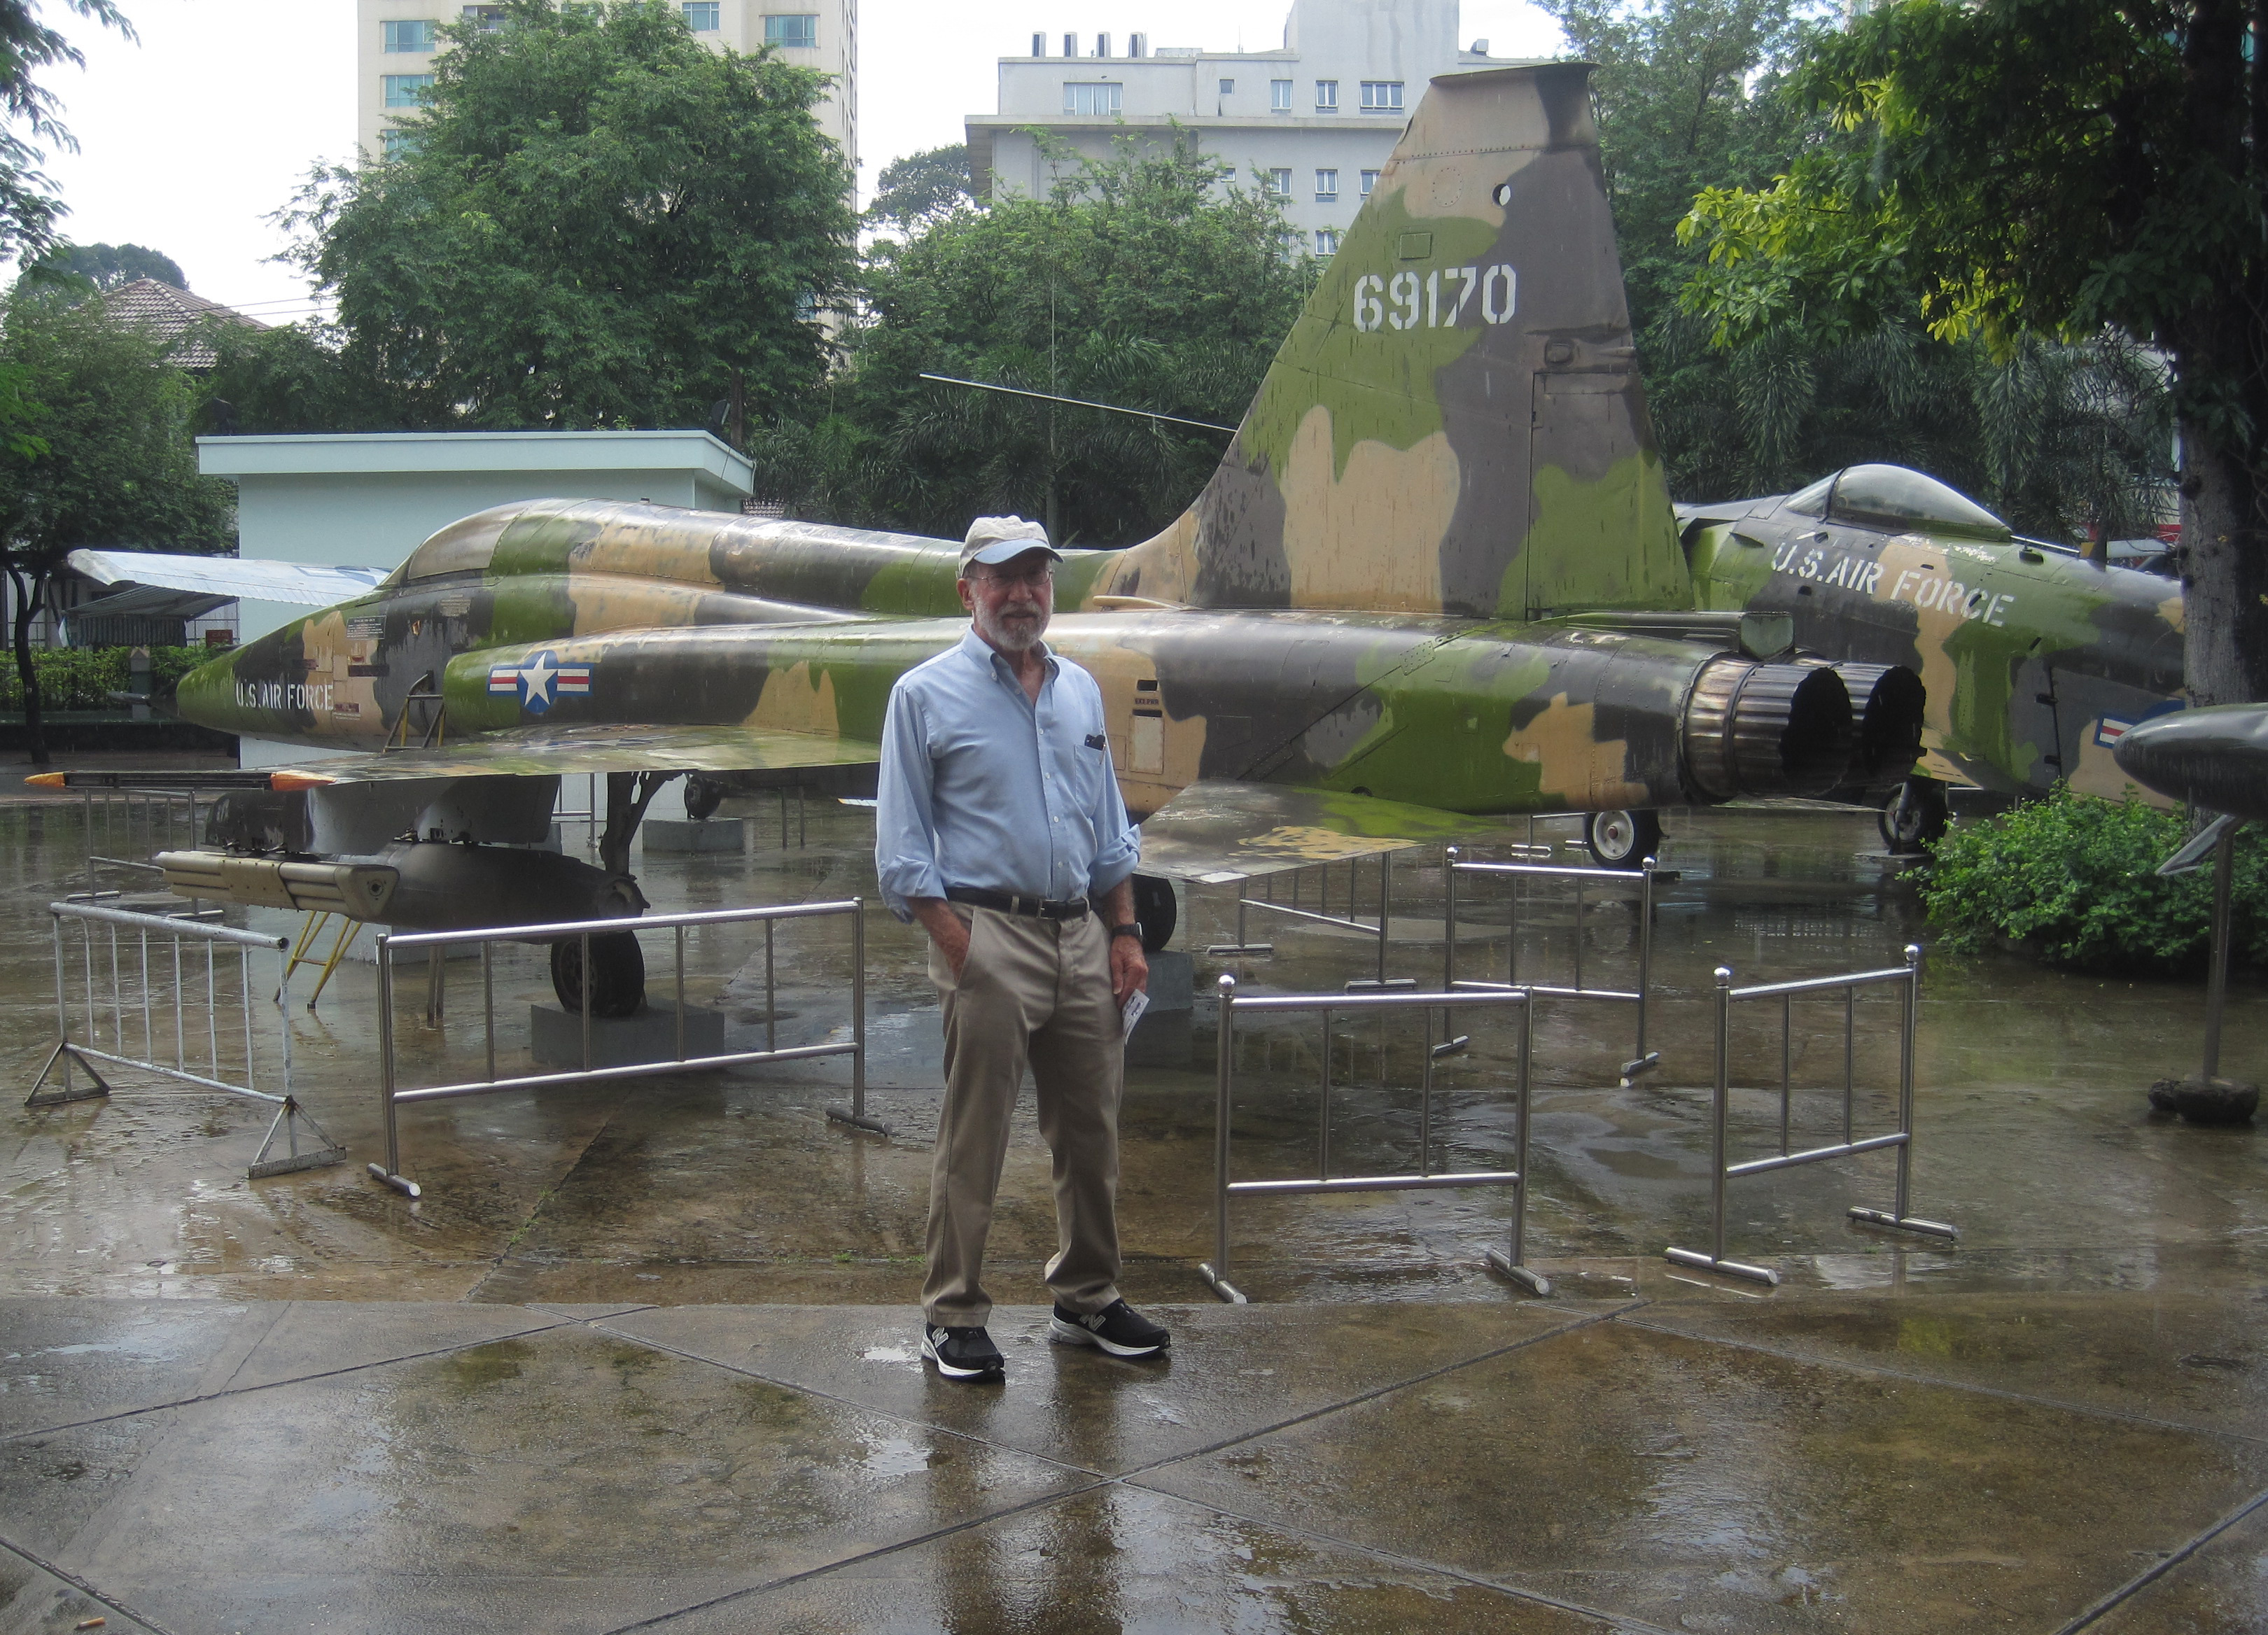 California Native's Lee Klein at Saigon's War Relics Museum